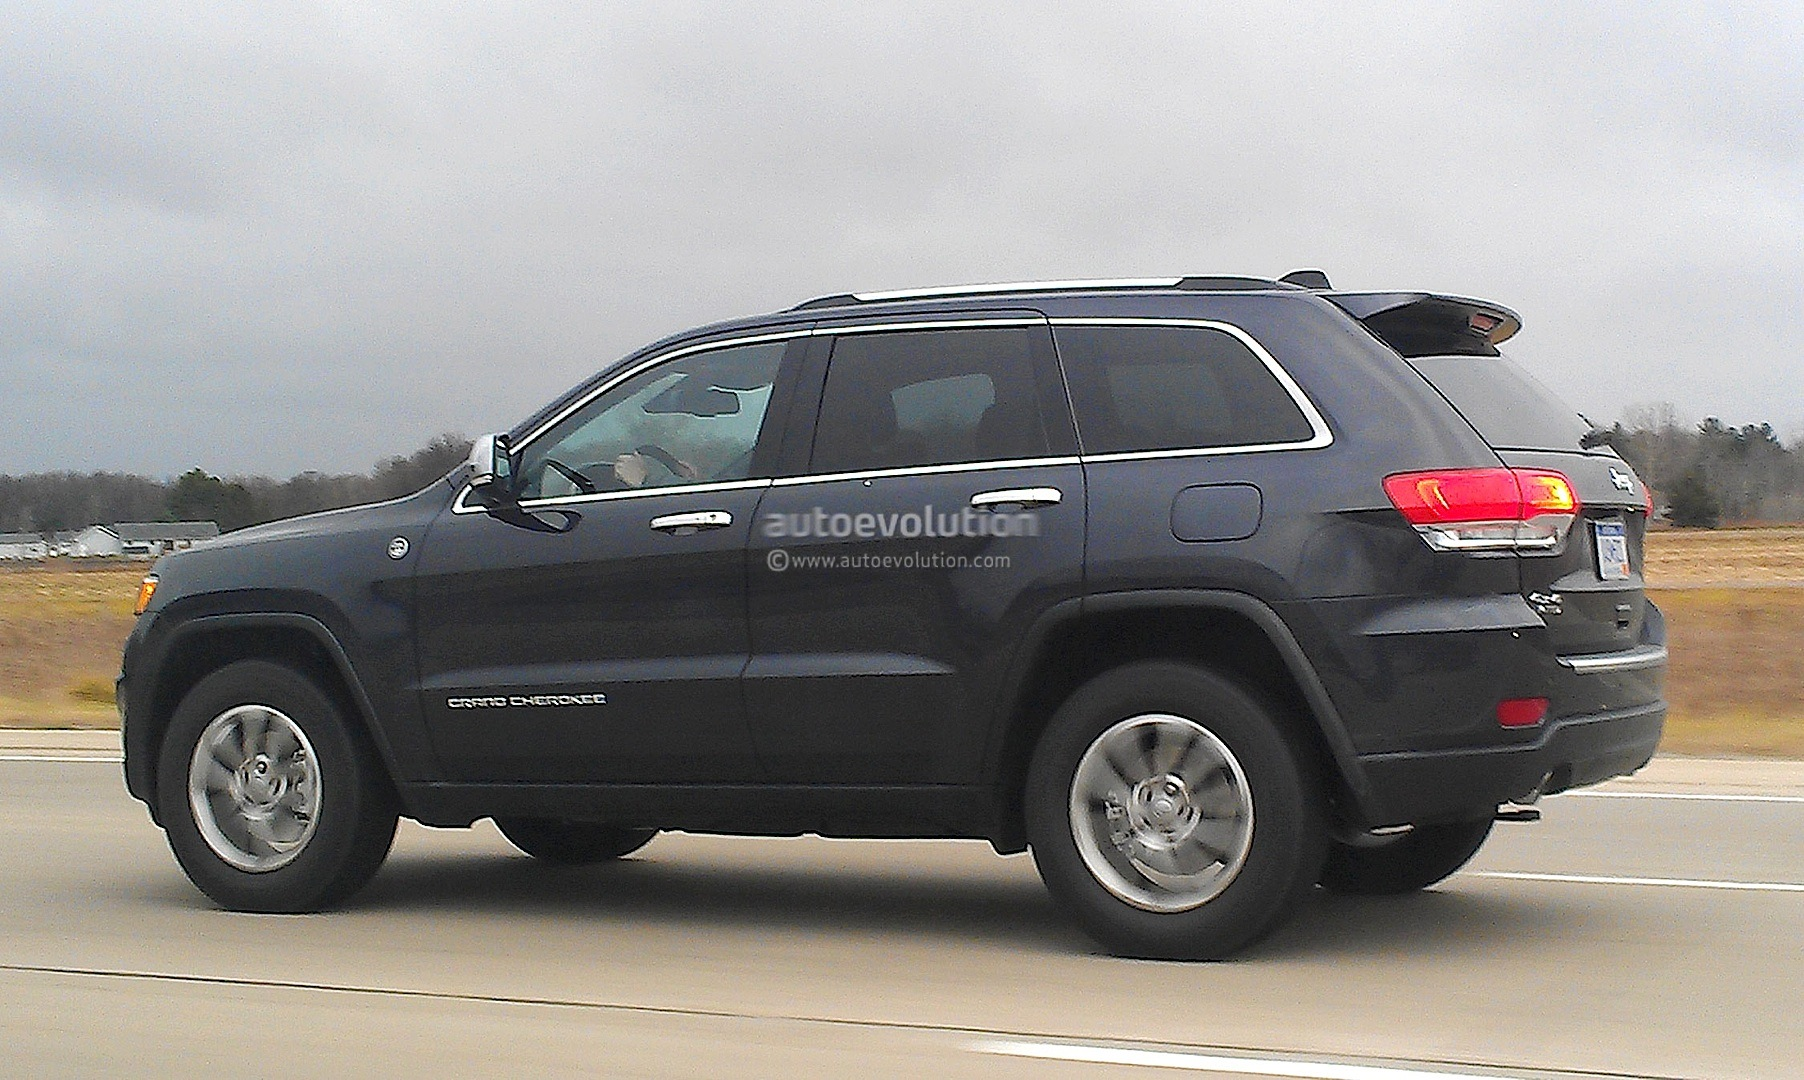 Spyshots: 2014 Jeep Grand Cherokee Facelift Loses Almost All Camo